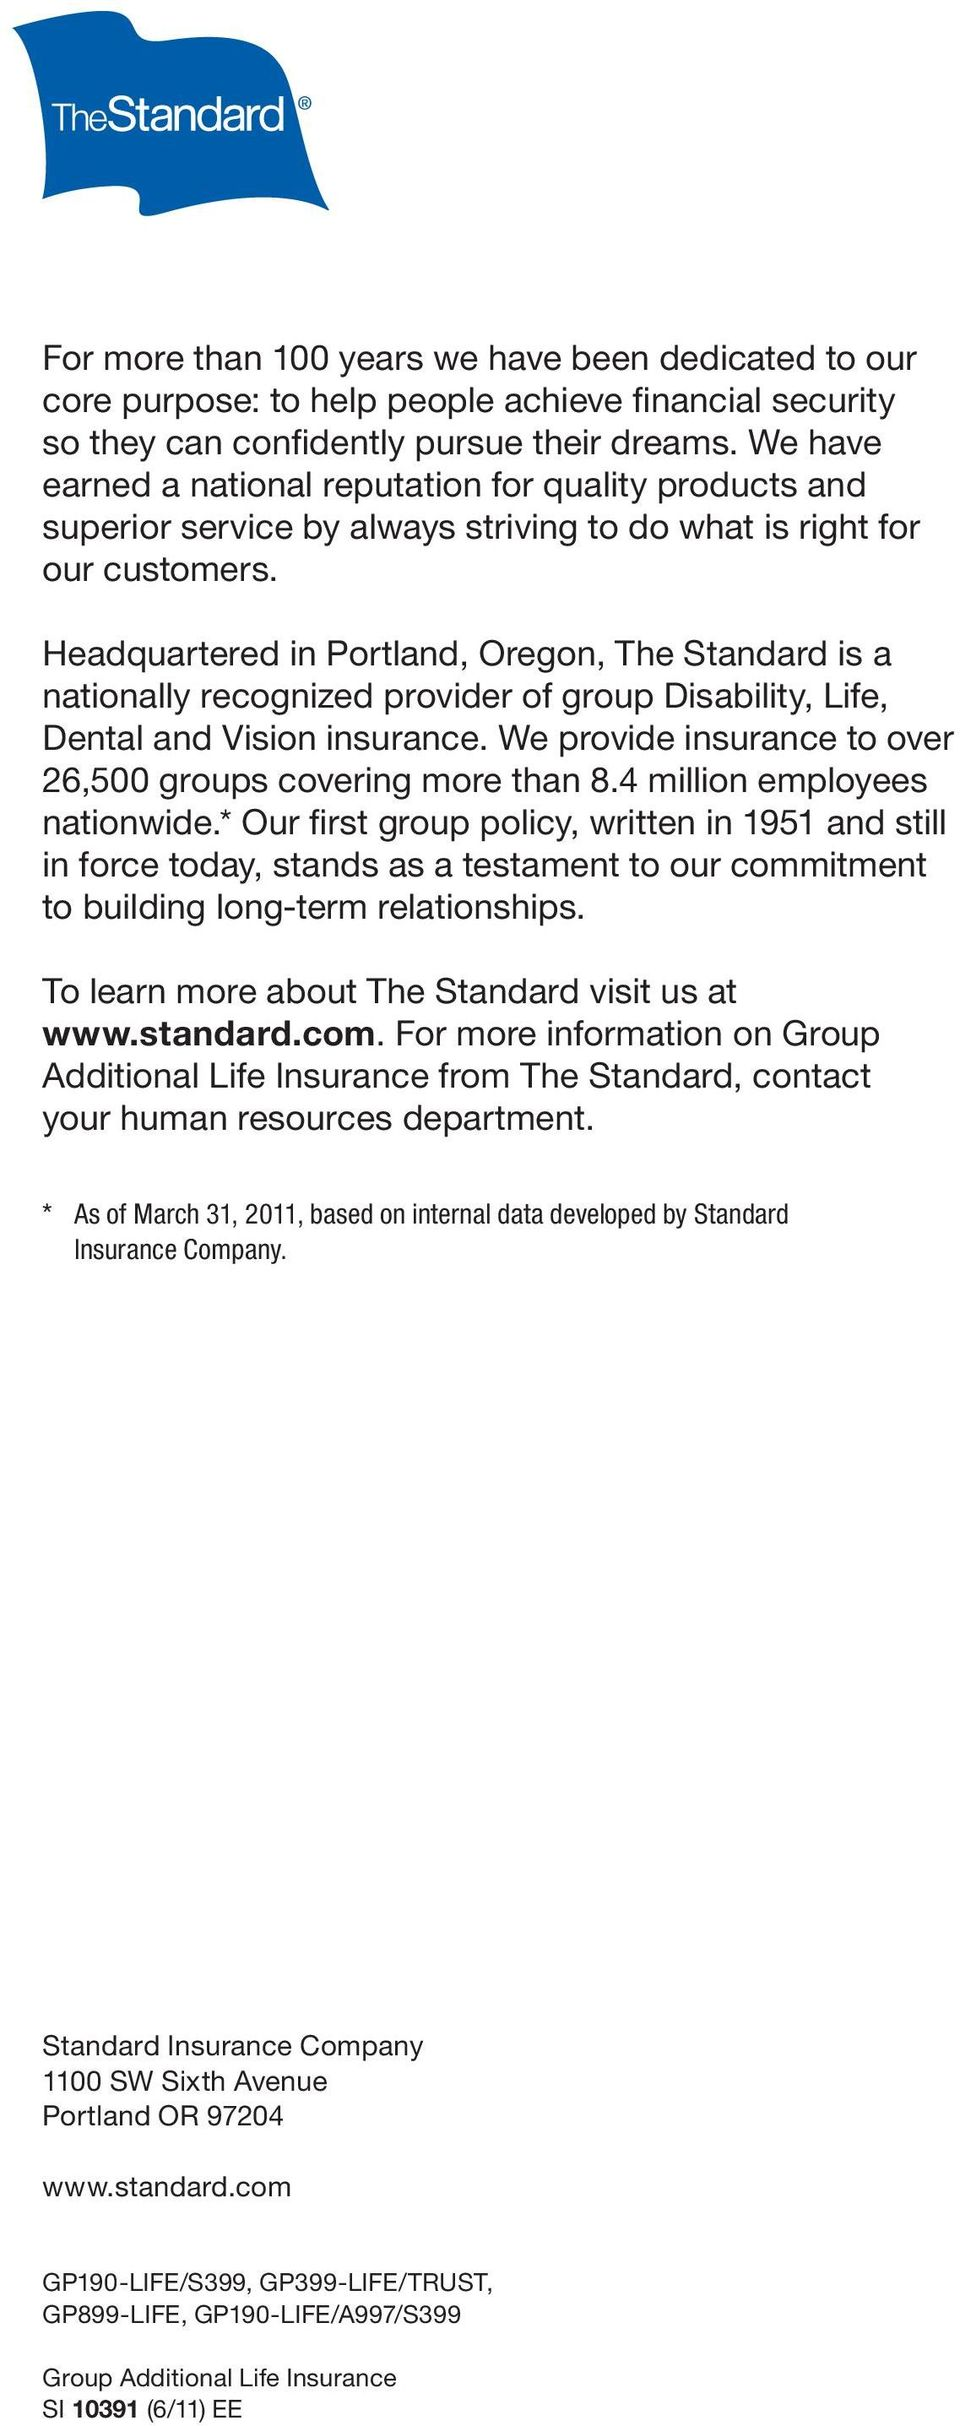 Headquartered in Portland, Oregon, The Standard is a nationally recognized provider of group Disability, Life, Dental and Vision insurance.